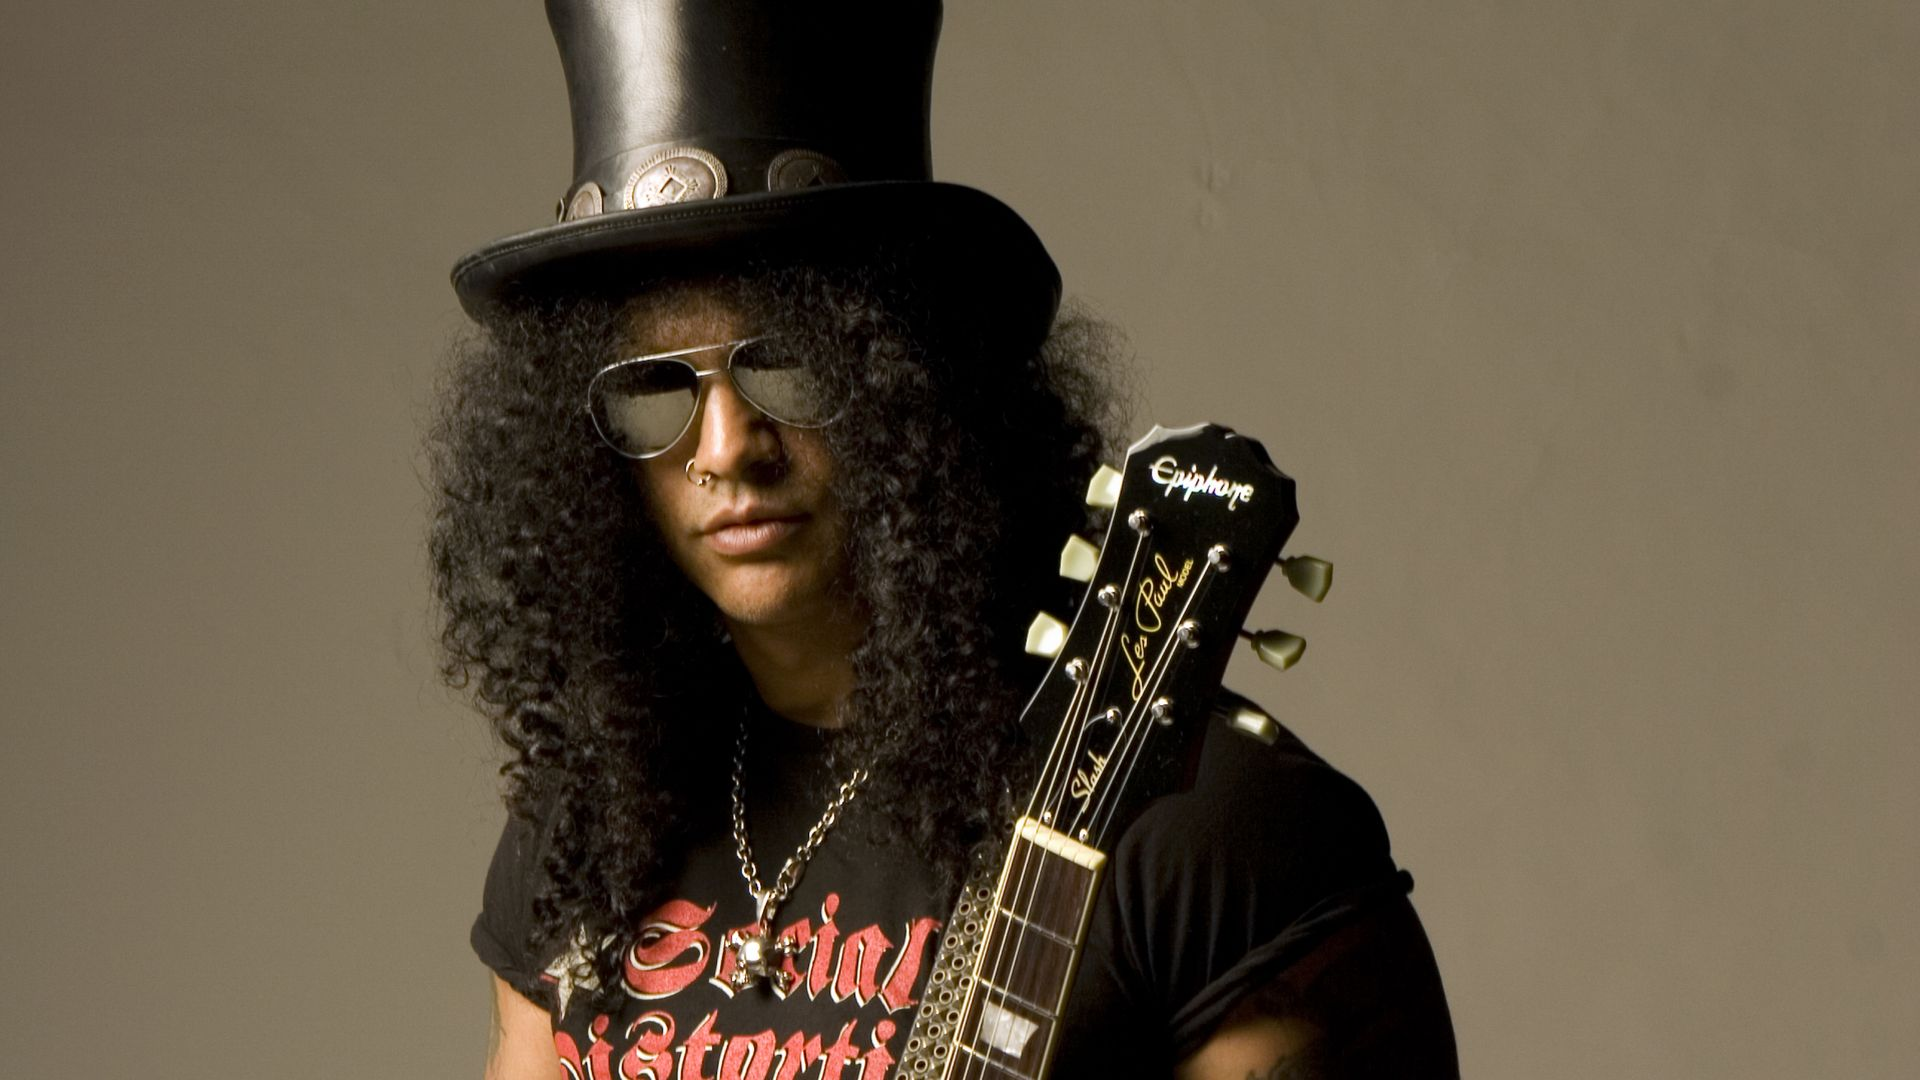 Slash de Guns and Roses - 1920x1080